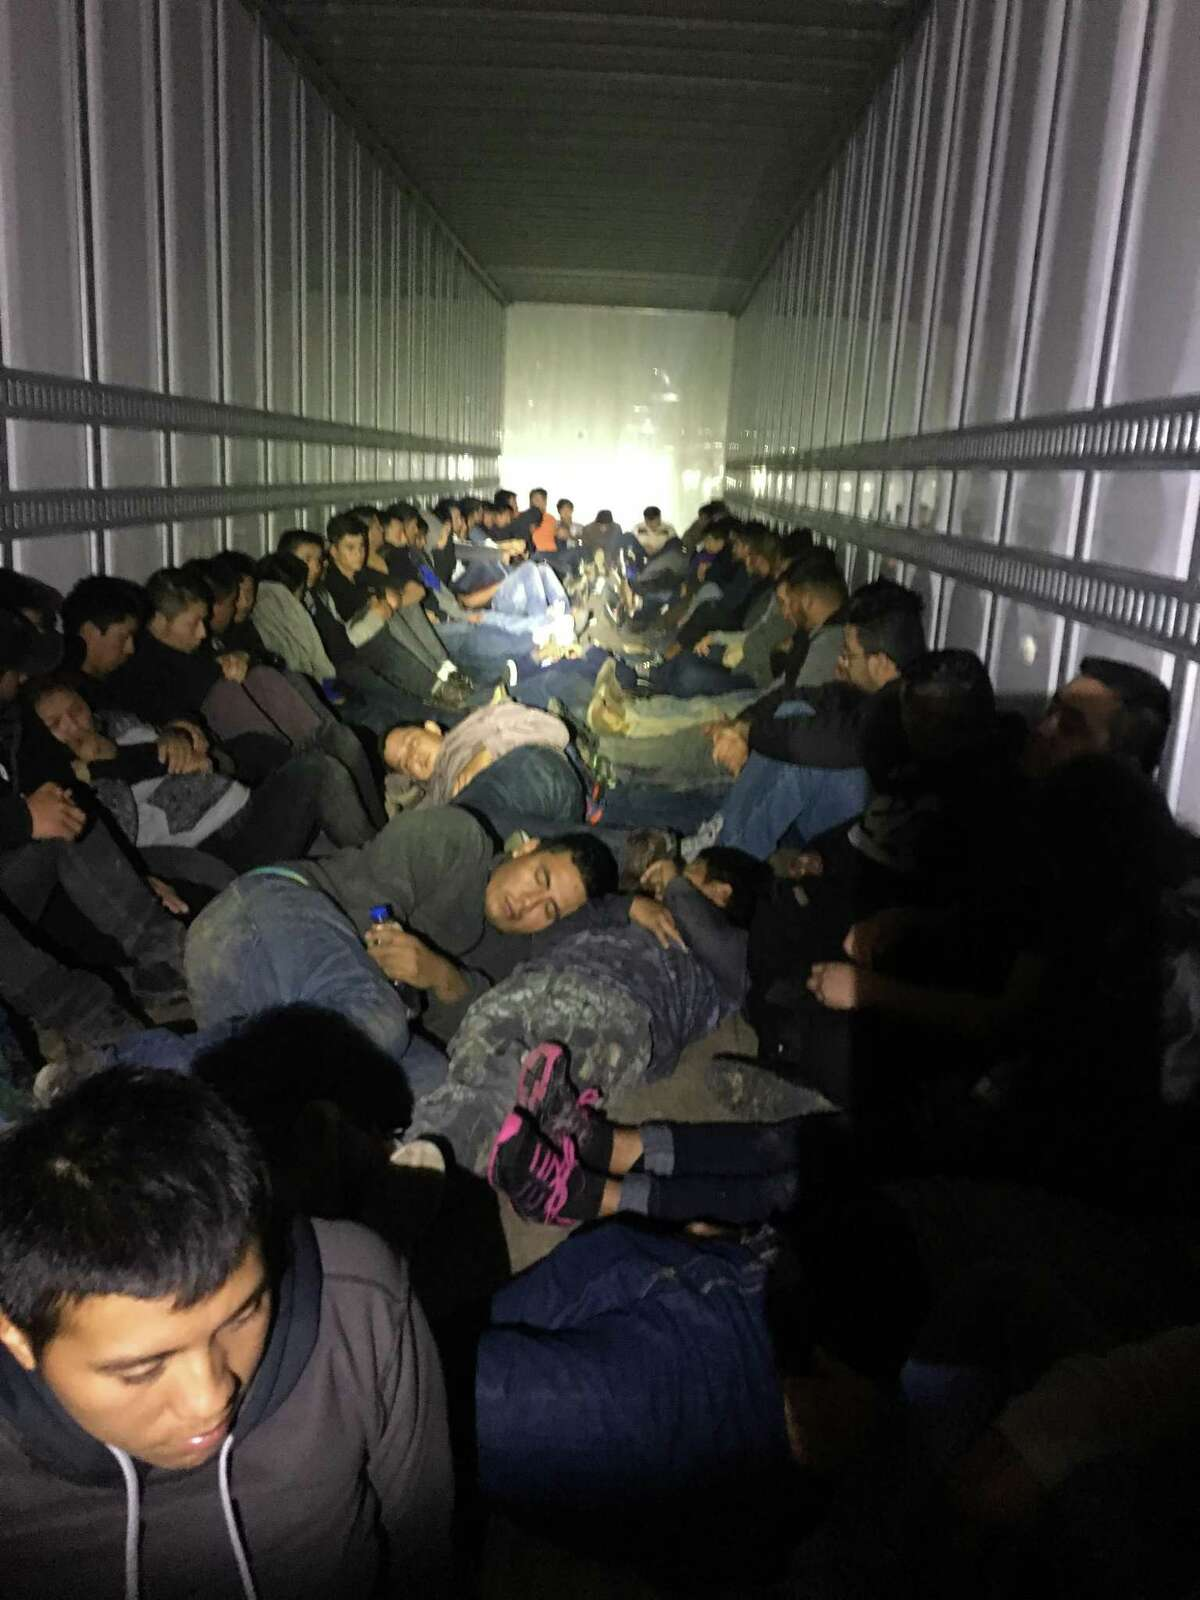 """The Border Patrol said agents working at a checkpoint on U.S. 83 near Laredo found 76 undocu- mented immigrants inside a tractor- trailer on Friday. The immigrants were in """"good health"""" a Border Patrol news release said."""